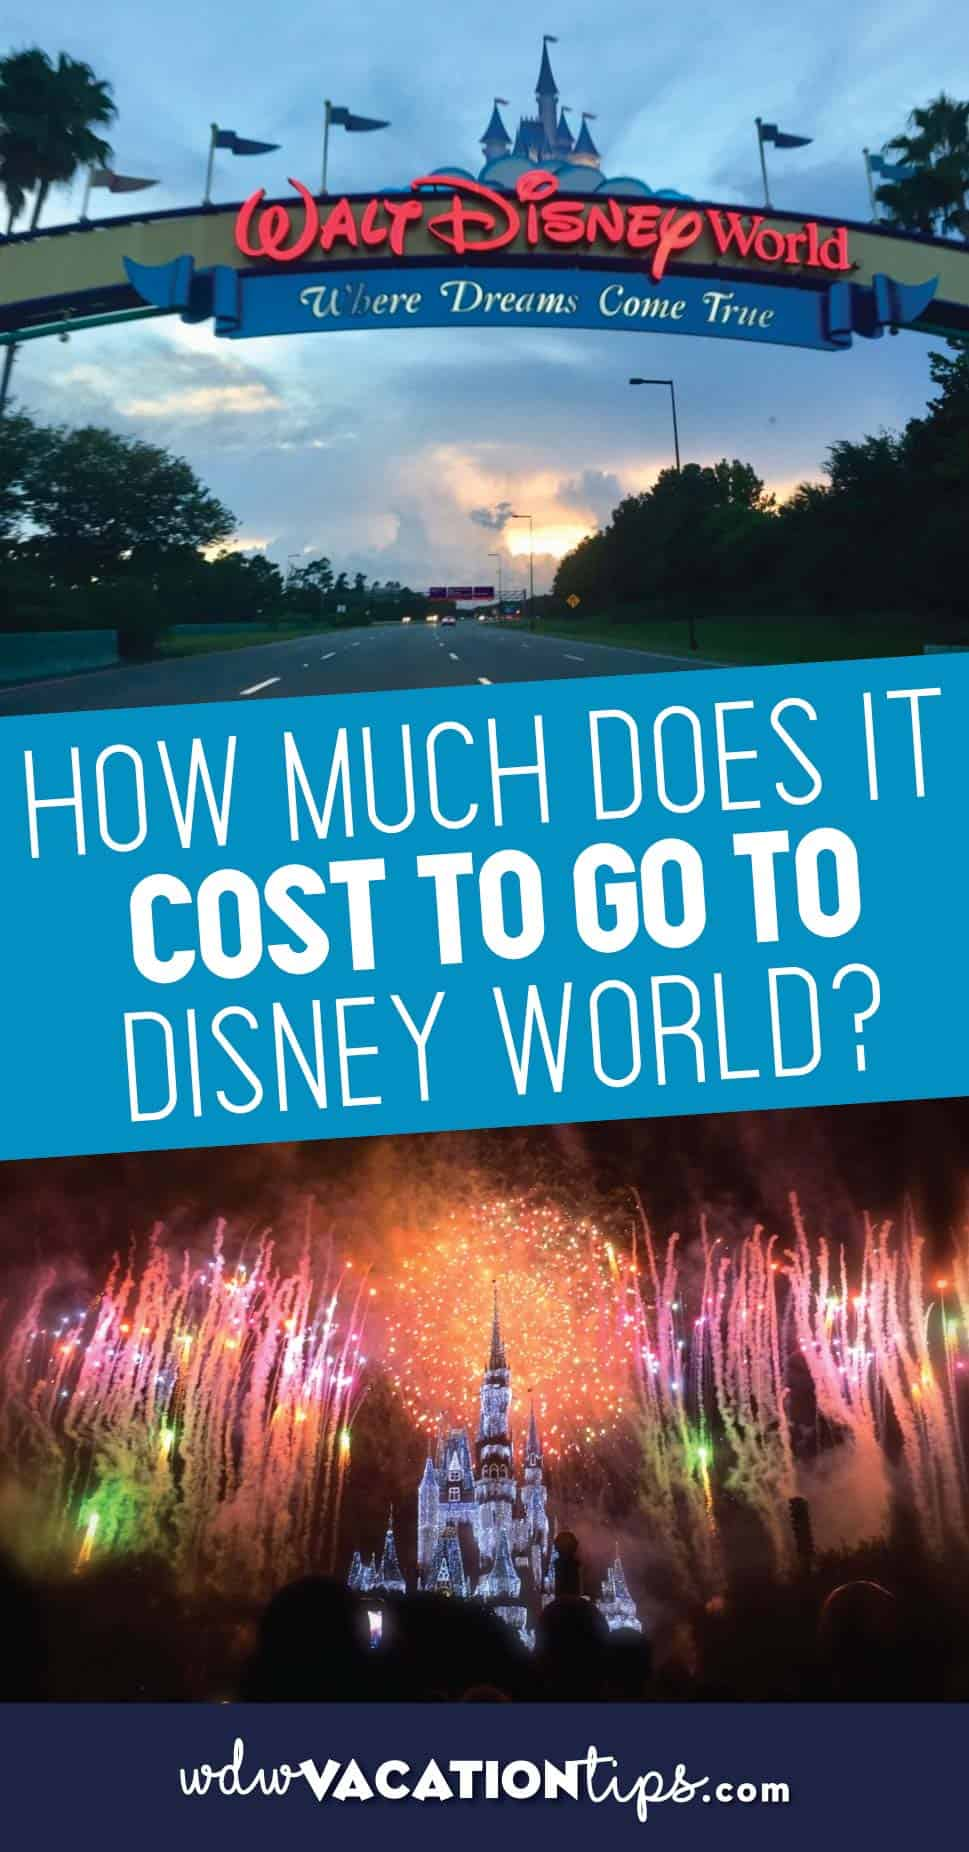 Cost of Disney World Vacation